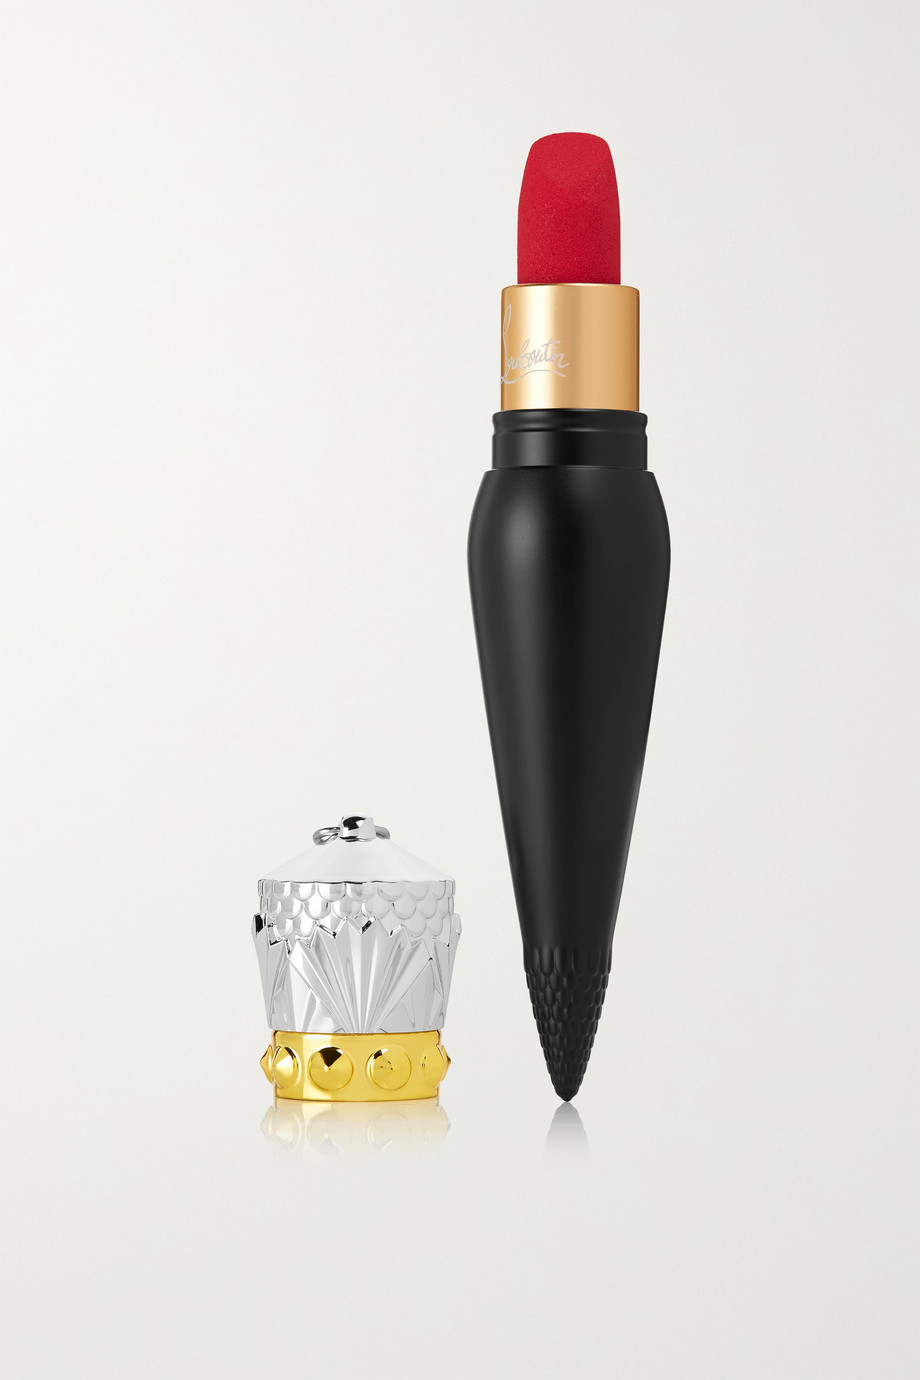 Christian Louboutin Beauty Velvet Matte Lip Colour - Goyetta